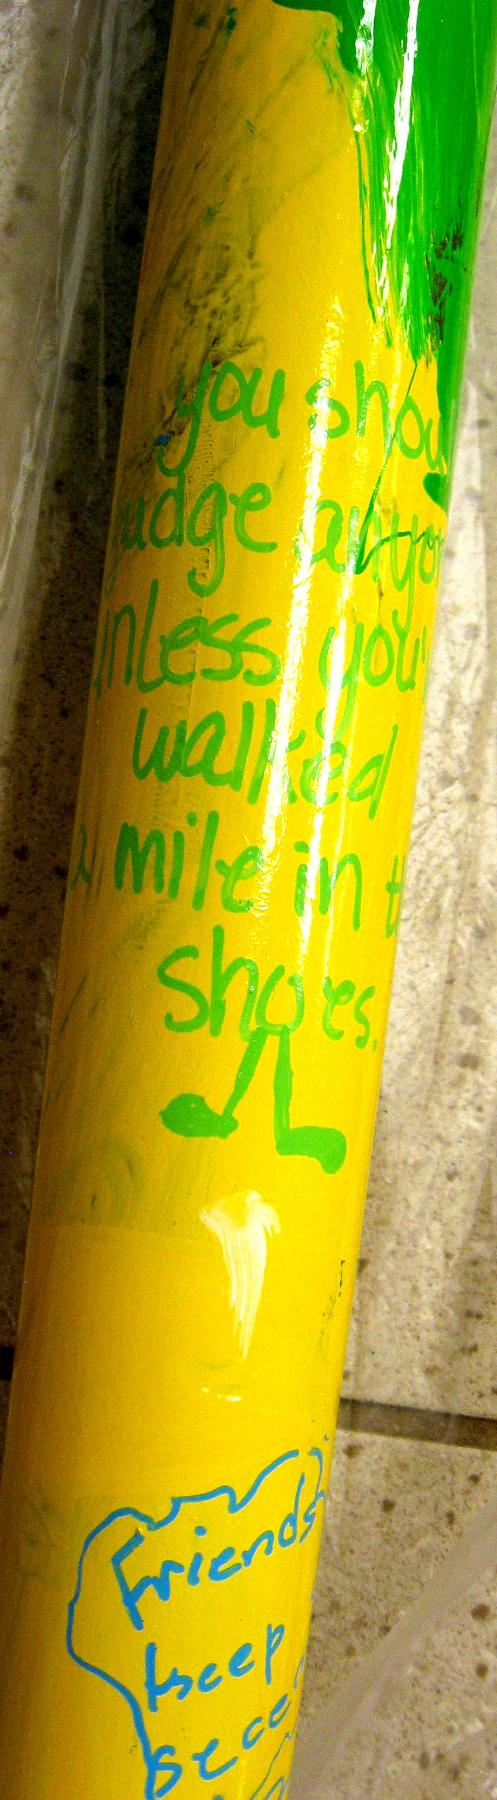 Close-up of the messages children wrote on the painted metal pipes.